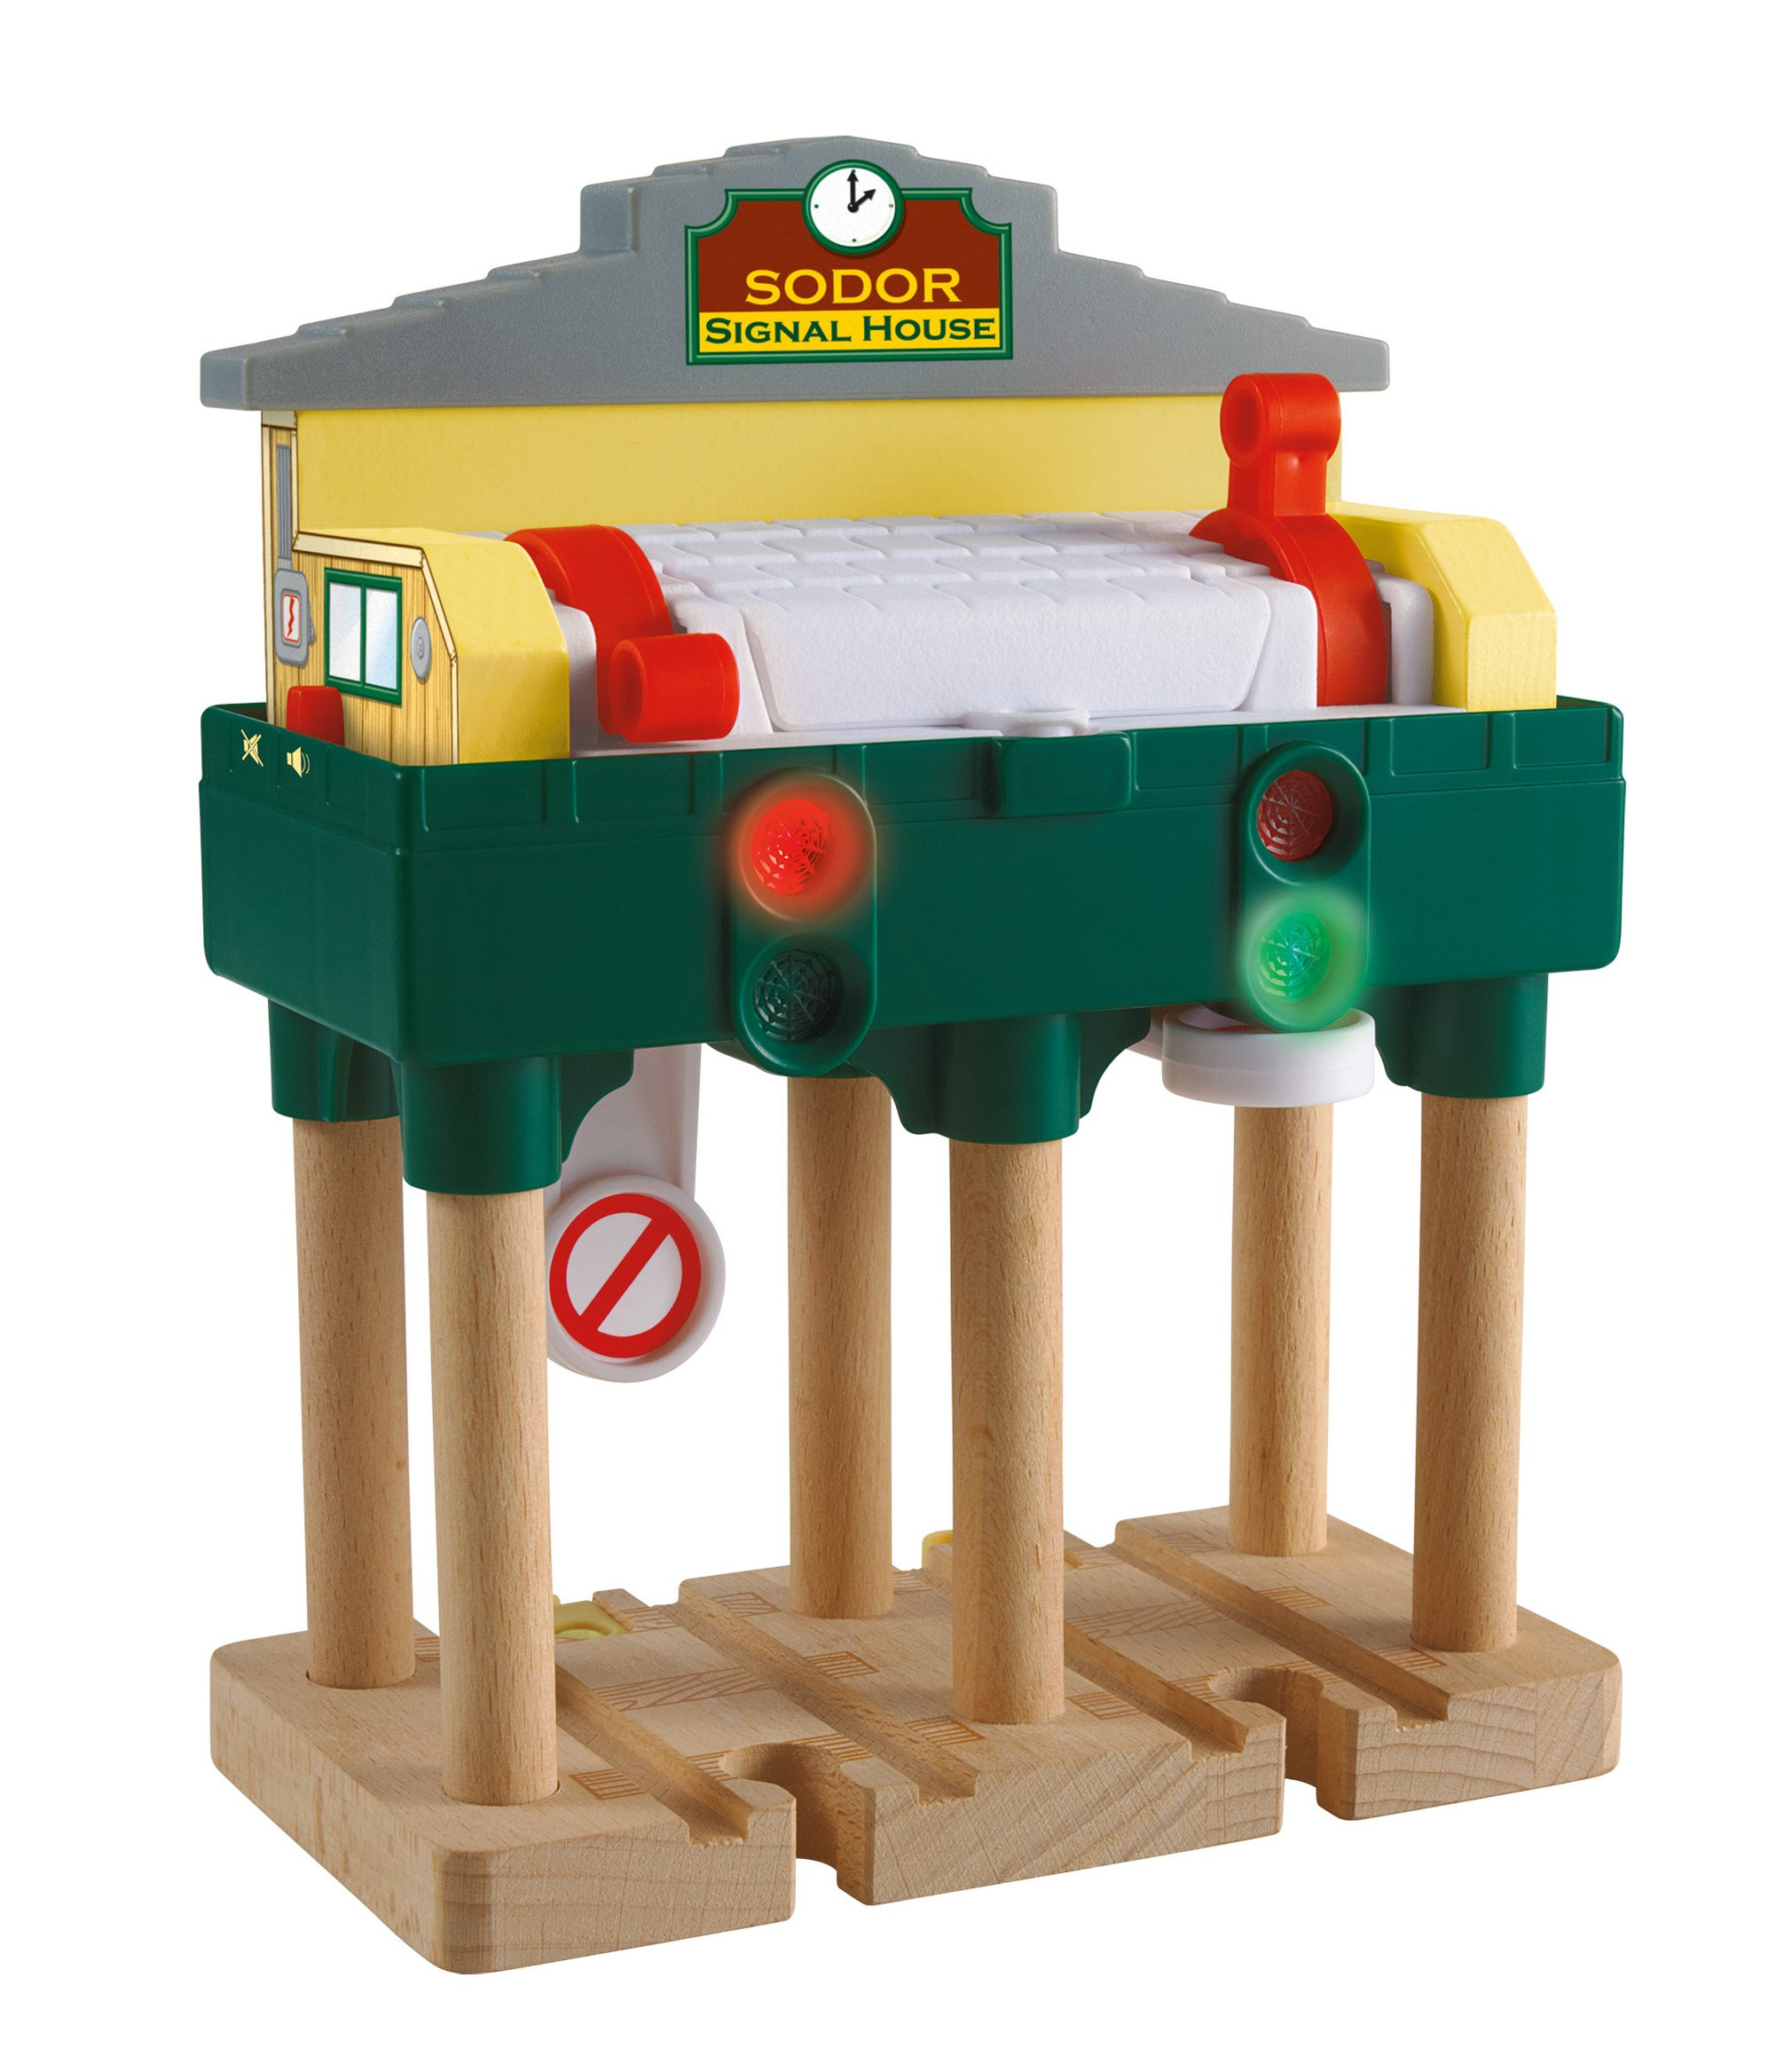 Thomas & Friends Fisher-Price Wooden Railway, Deluxe Over-The-Track Signal - Battery Operated